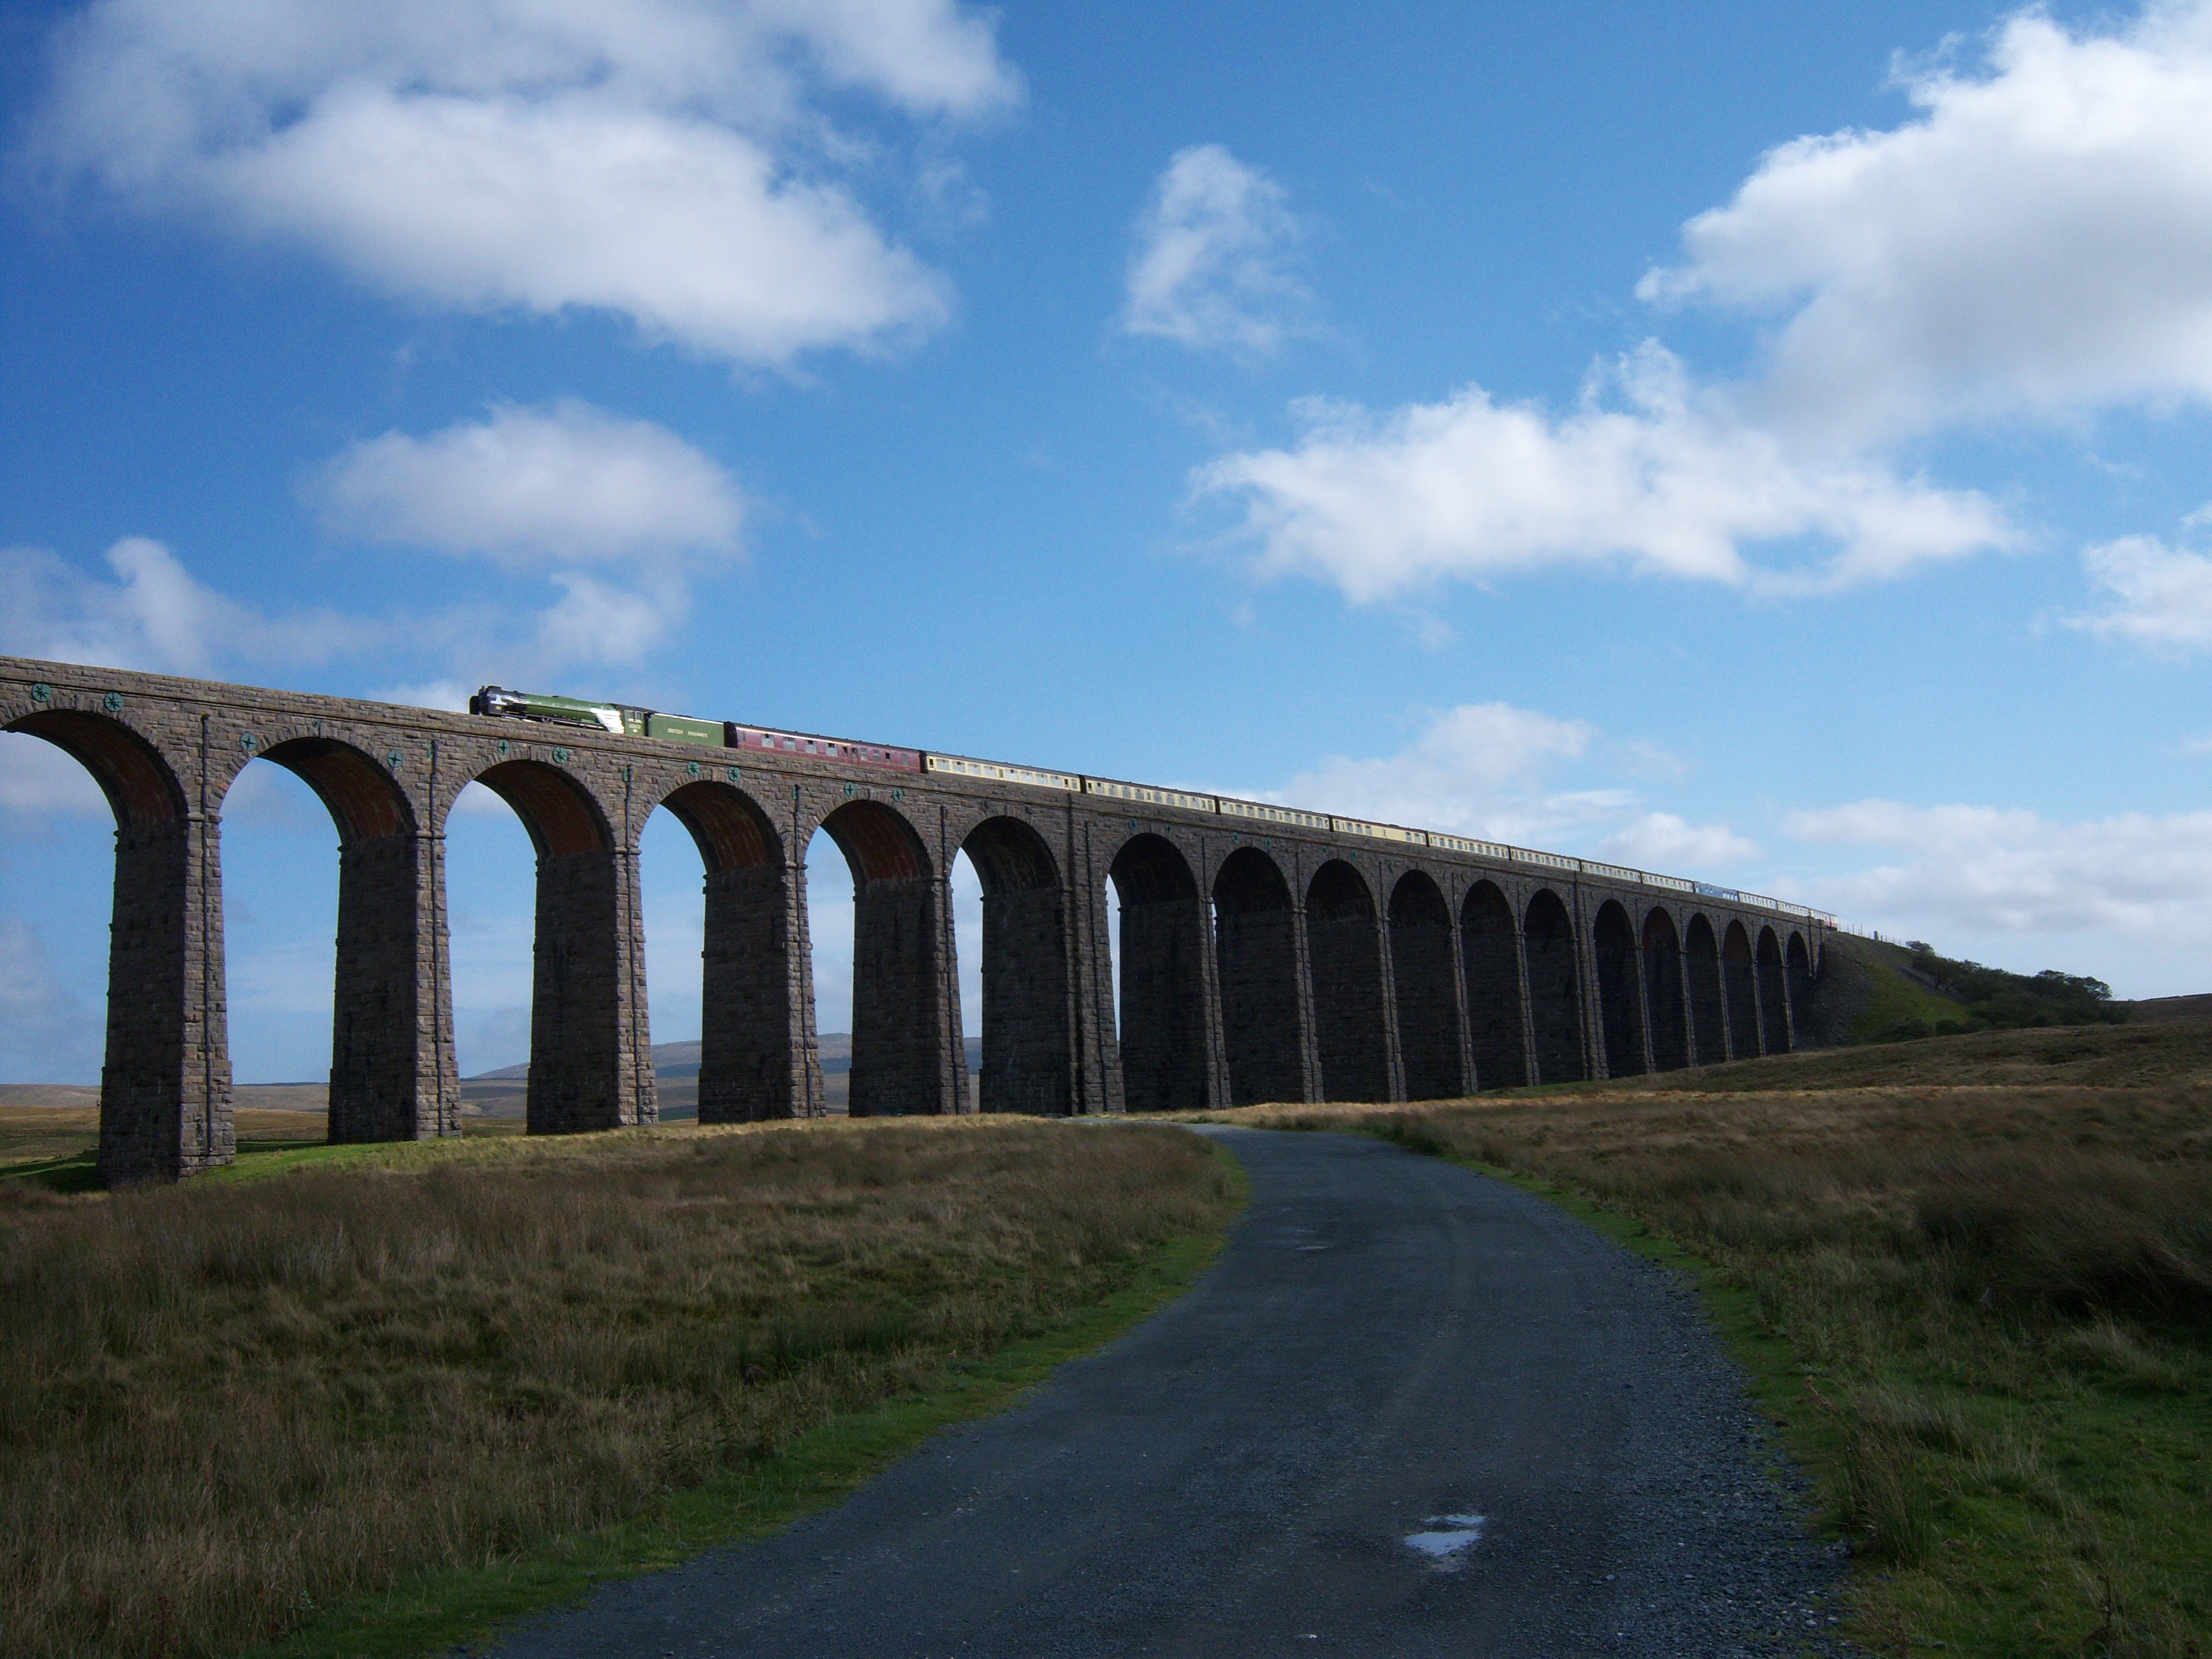 Steam locomotive 60163 Tornado LNER Peppercorn A1 class Ribblehead Viaduct The waverley 3 October 2009 image 1.jpg